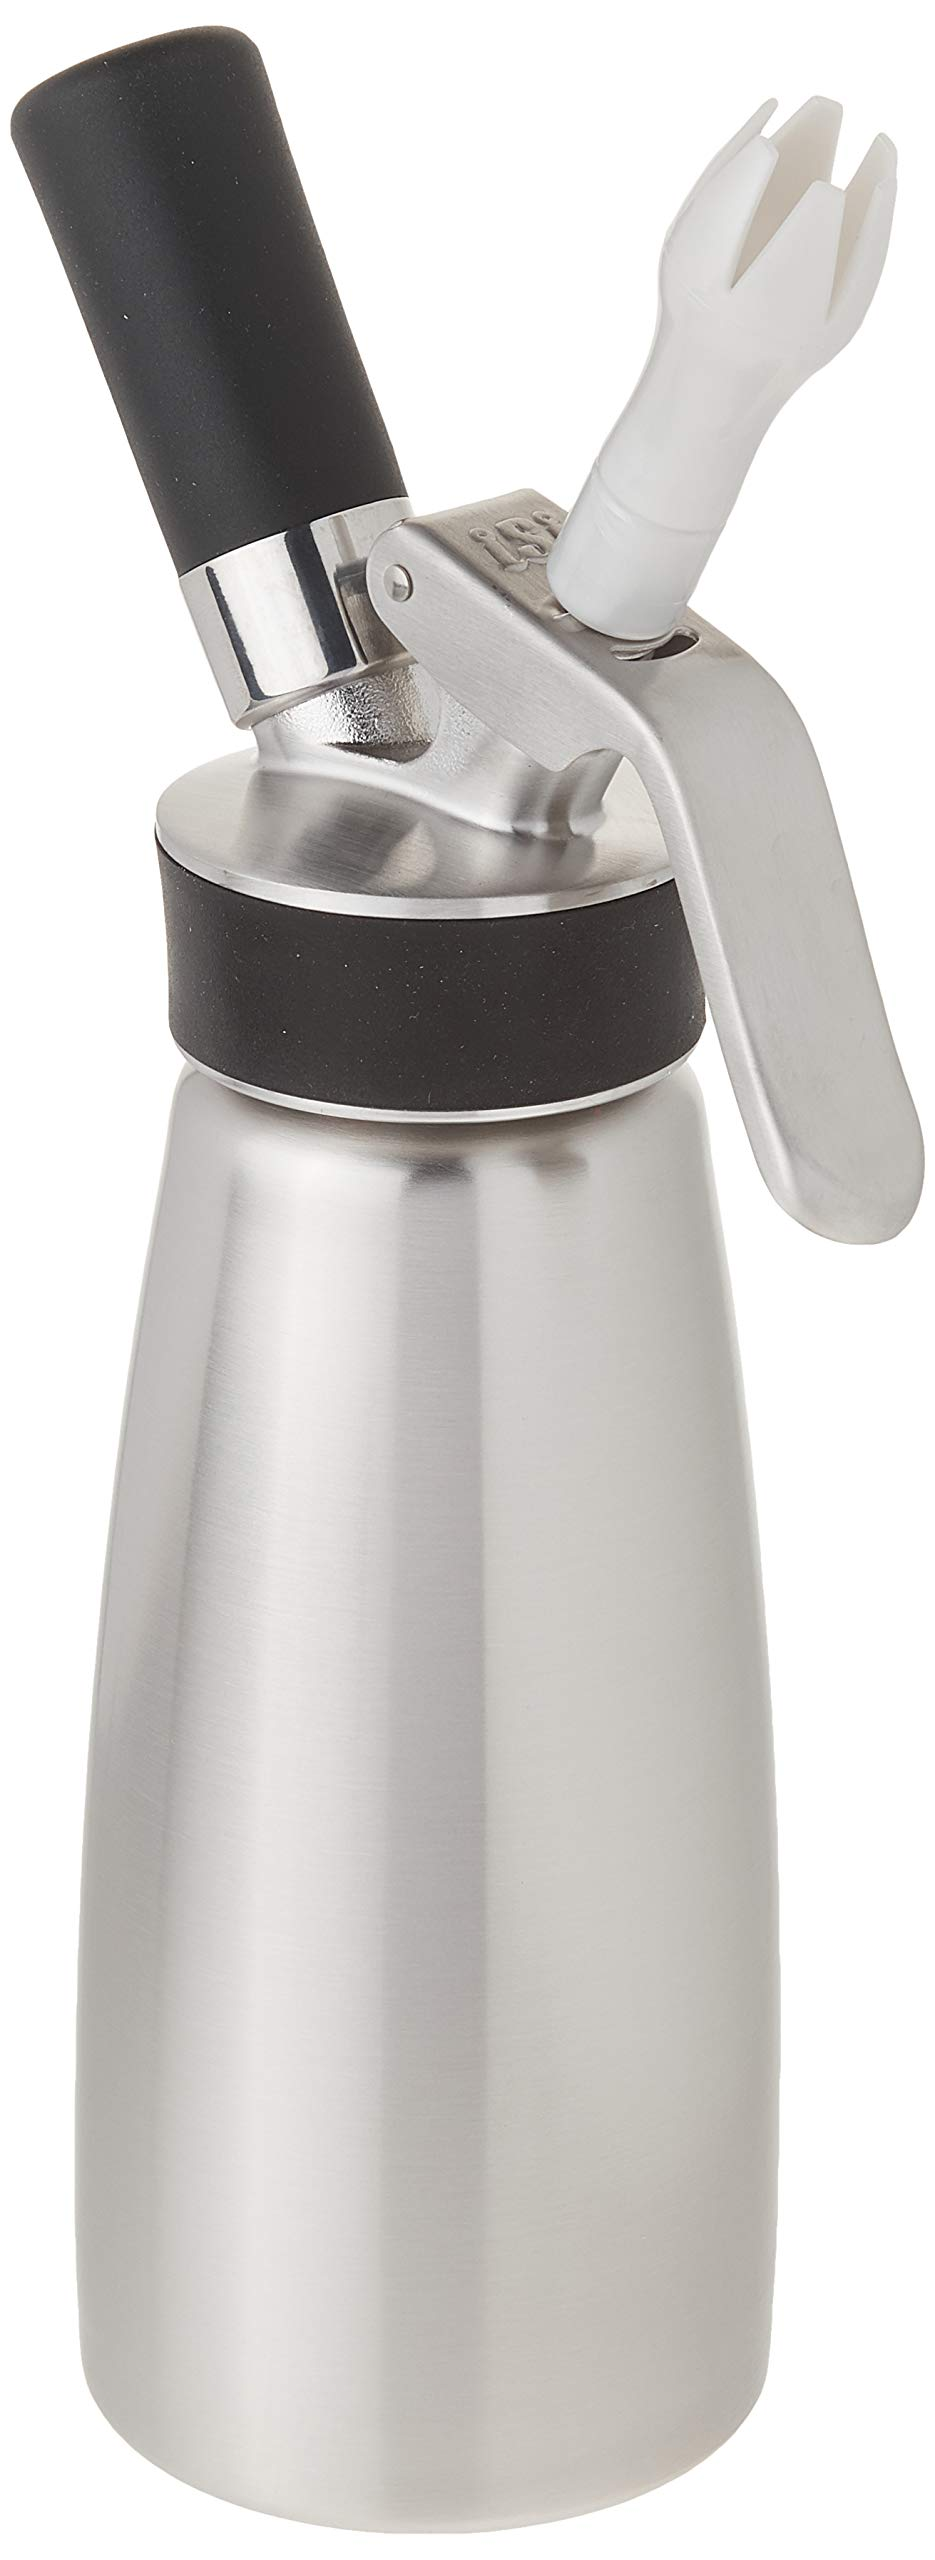 iSi Cream Profi Whip Professional Cream Whipper 2416 by iSi North America